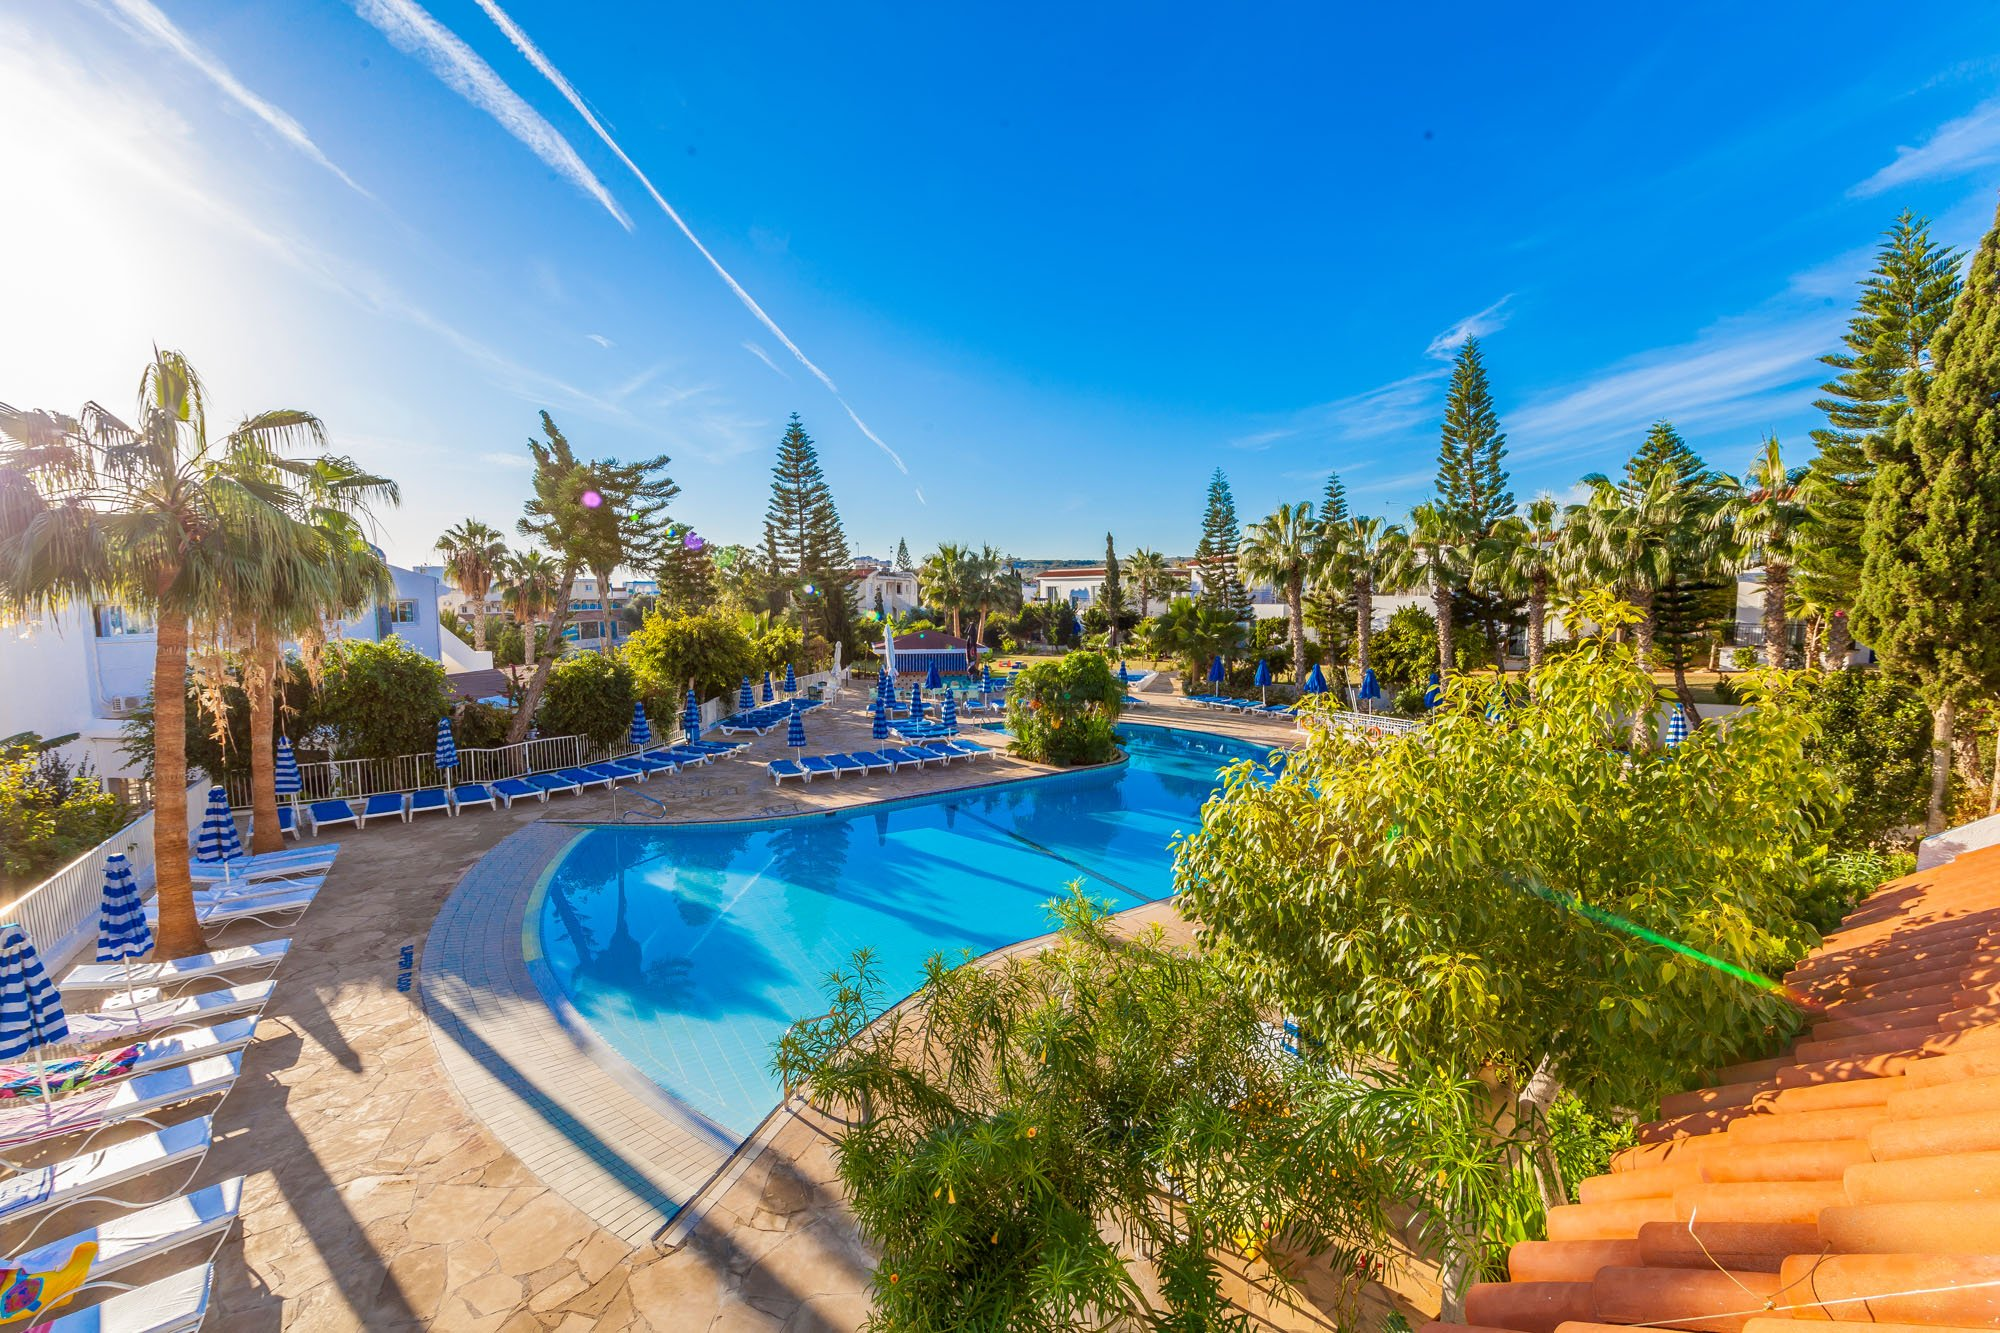 Protaras Value Accommodations, amazing pool view during a sunny day